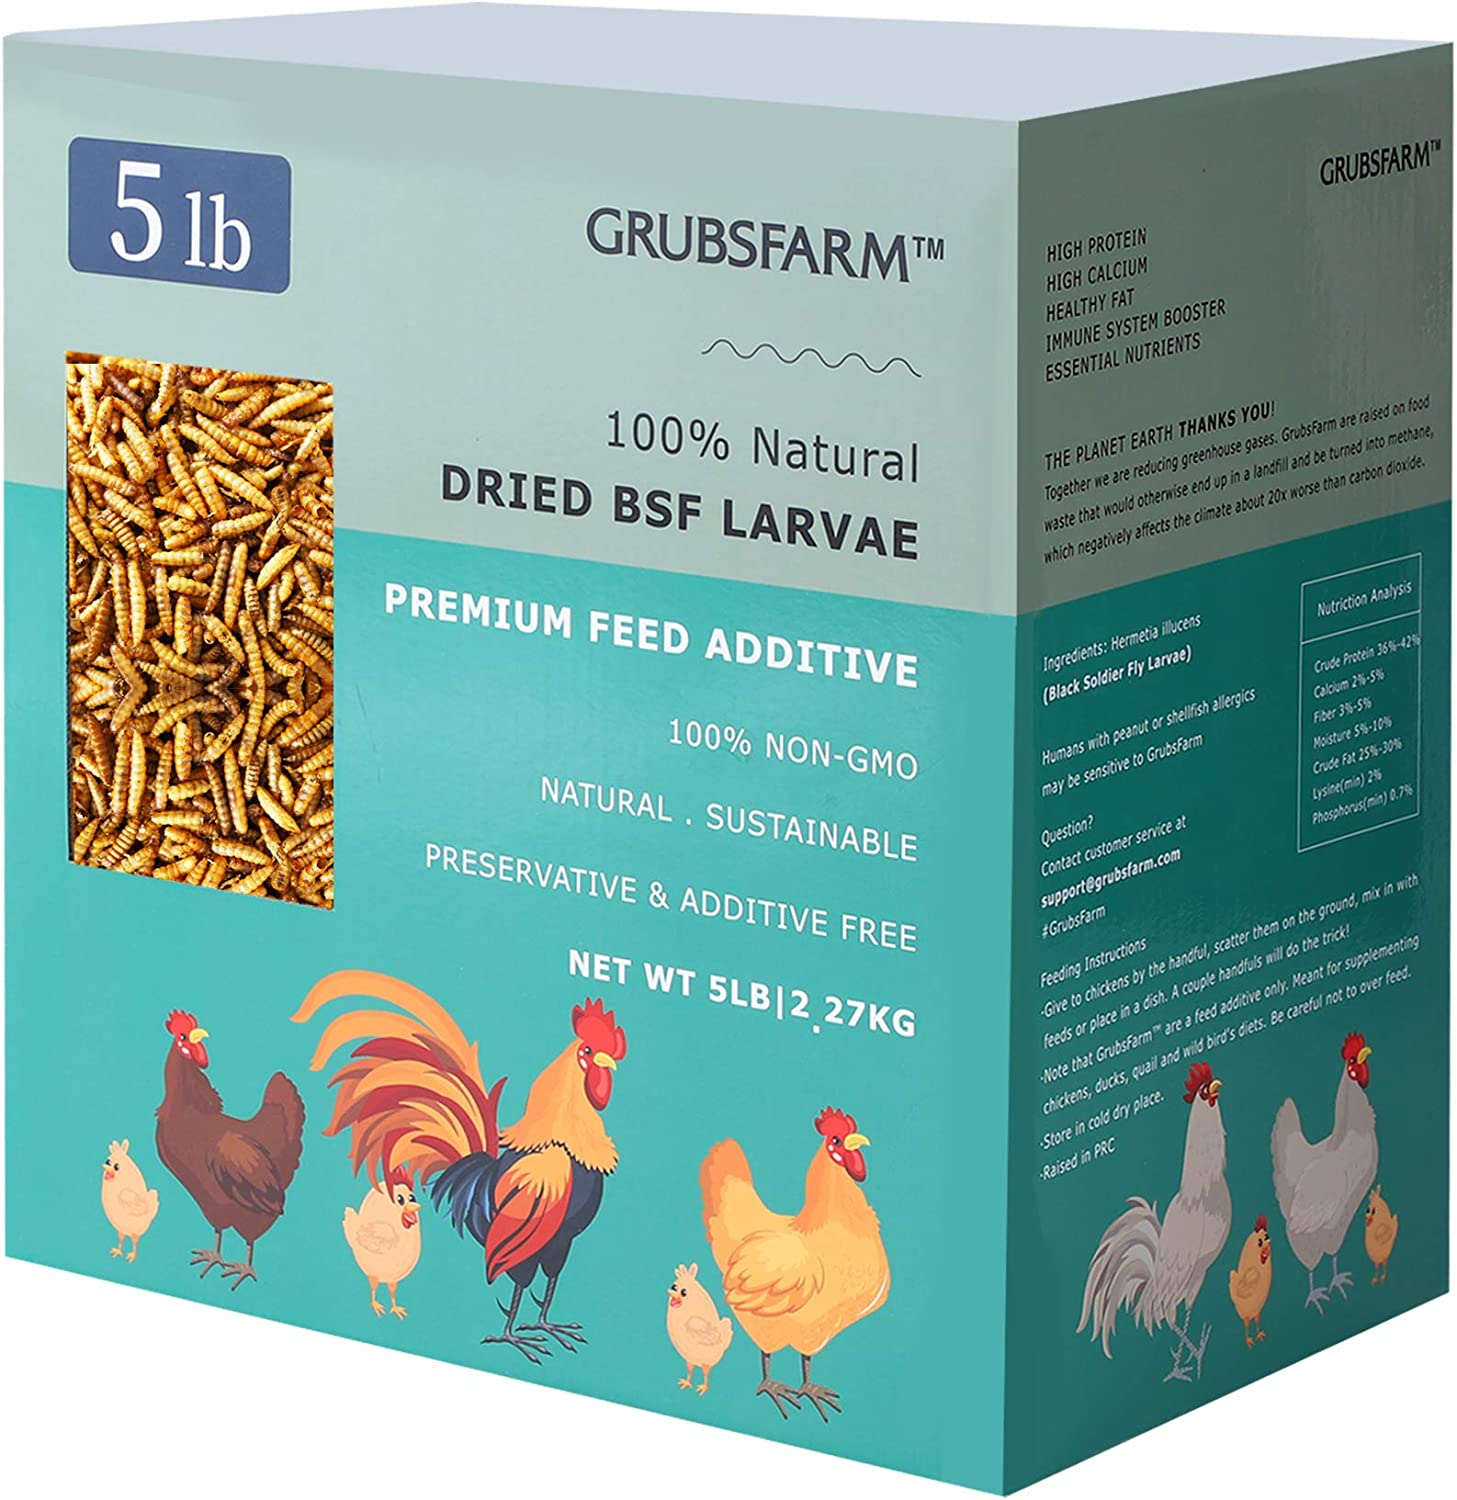 GRUBSFARM Better Than Dried Mealworms for Chickens 5LBS - Non-GMO 85X More Calcium Than Live/Freeze Meal Worms, Chicken Feed Molting Supplement, BSF Larvae Treats for Layer Hens, Ducks Wild Birds Food